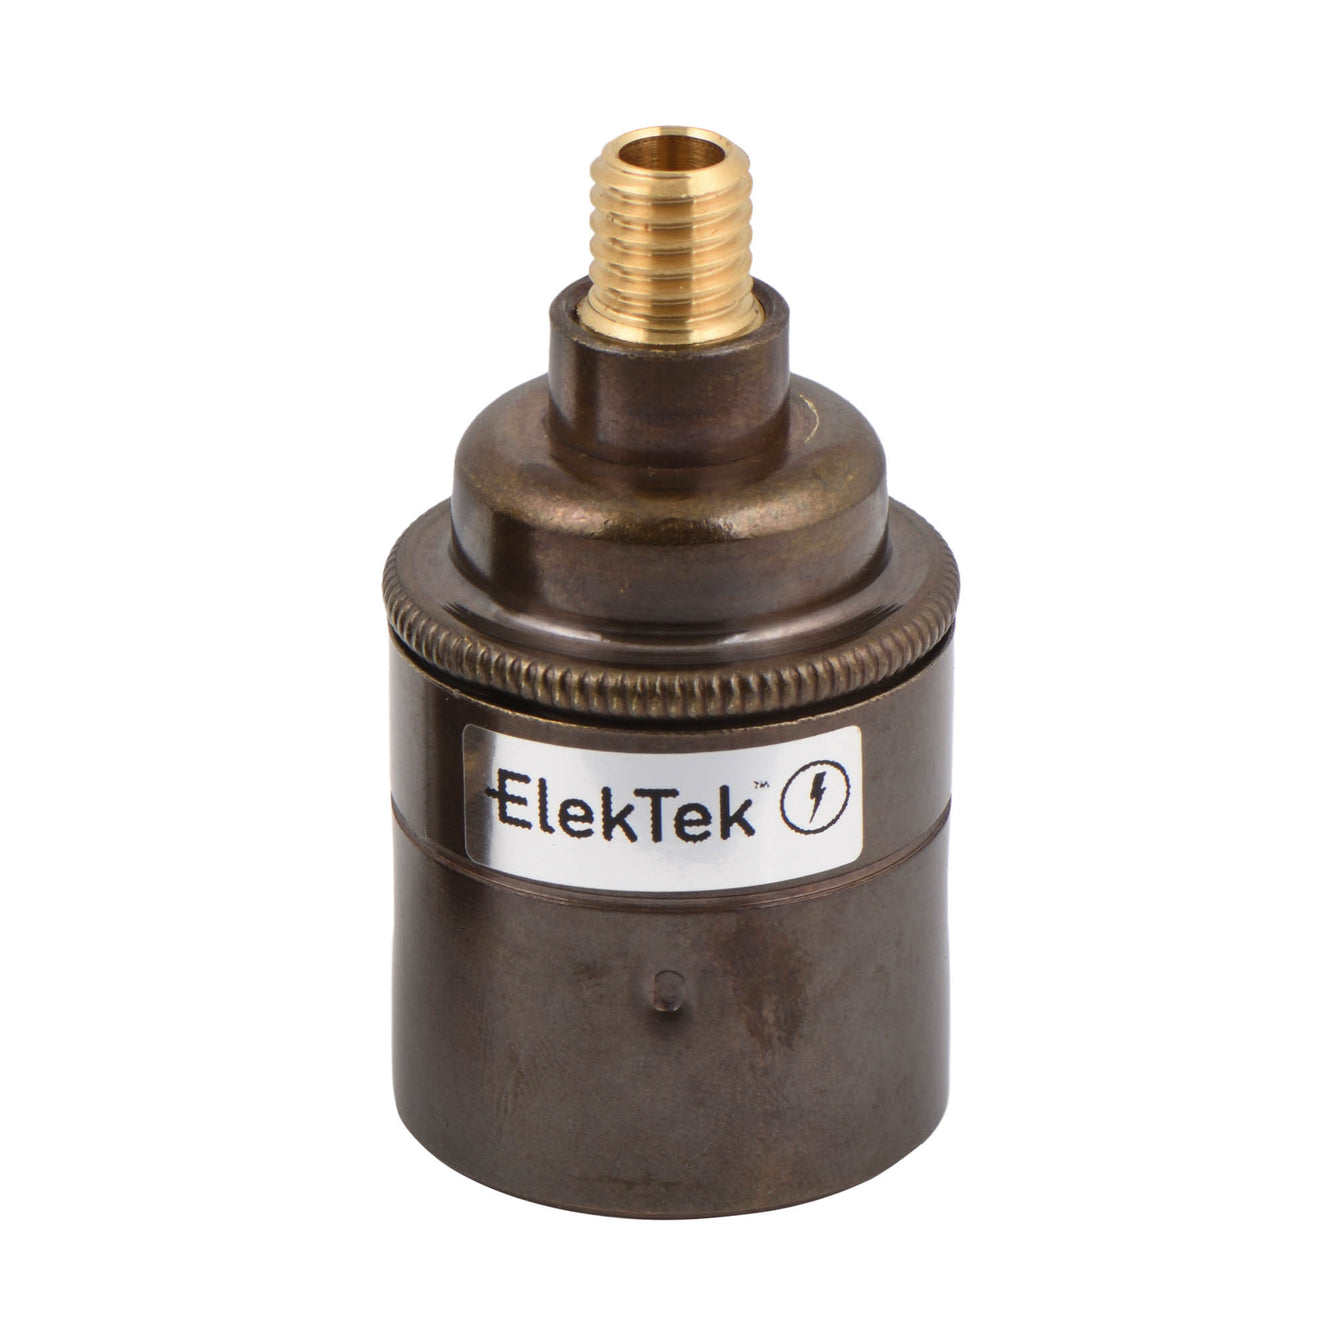 ElekTek ES Edison Screw E27 Lamp Holder Plain Skirt With Wood Nipple Brass - Buy It Better